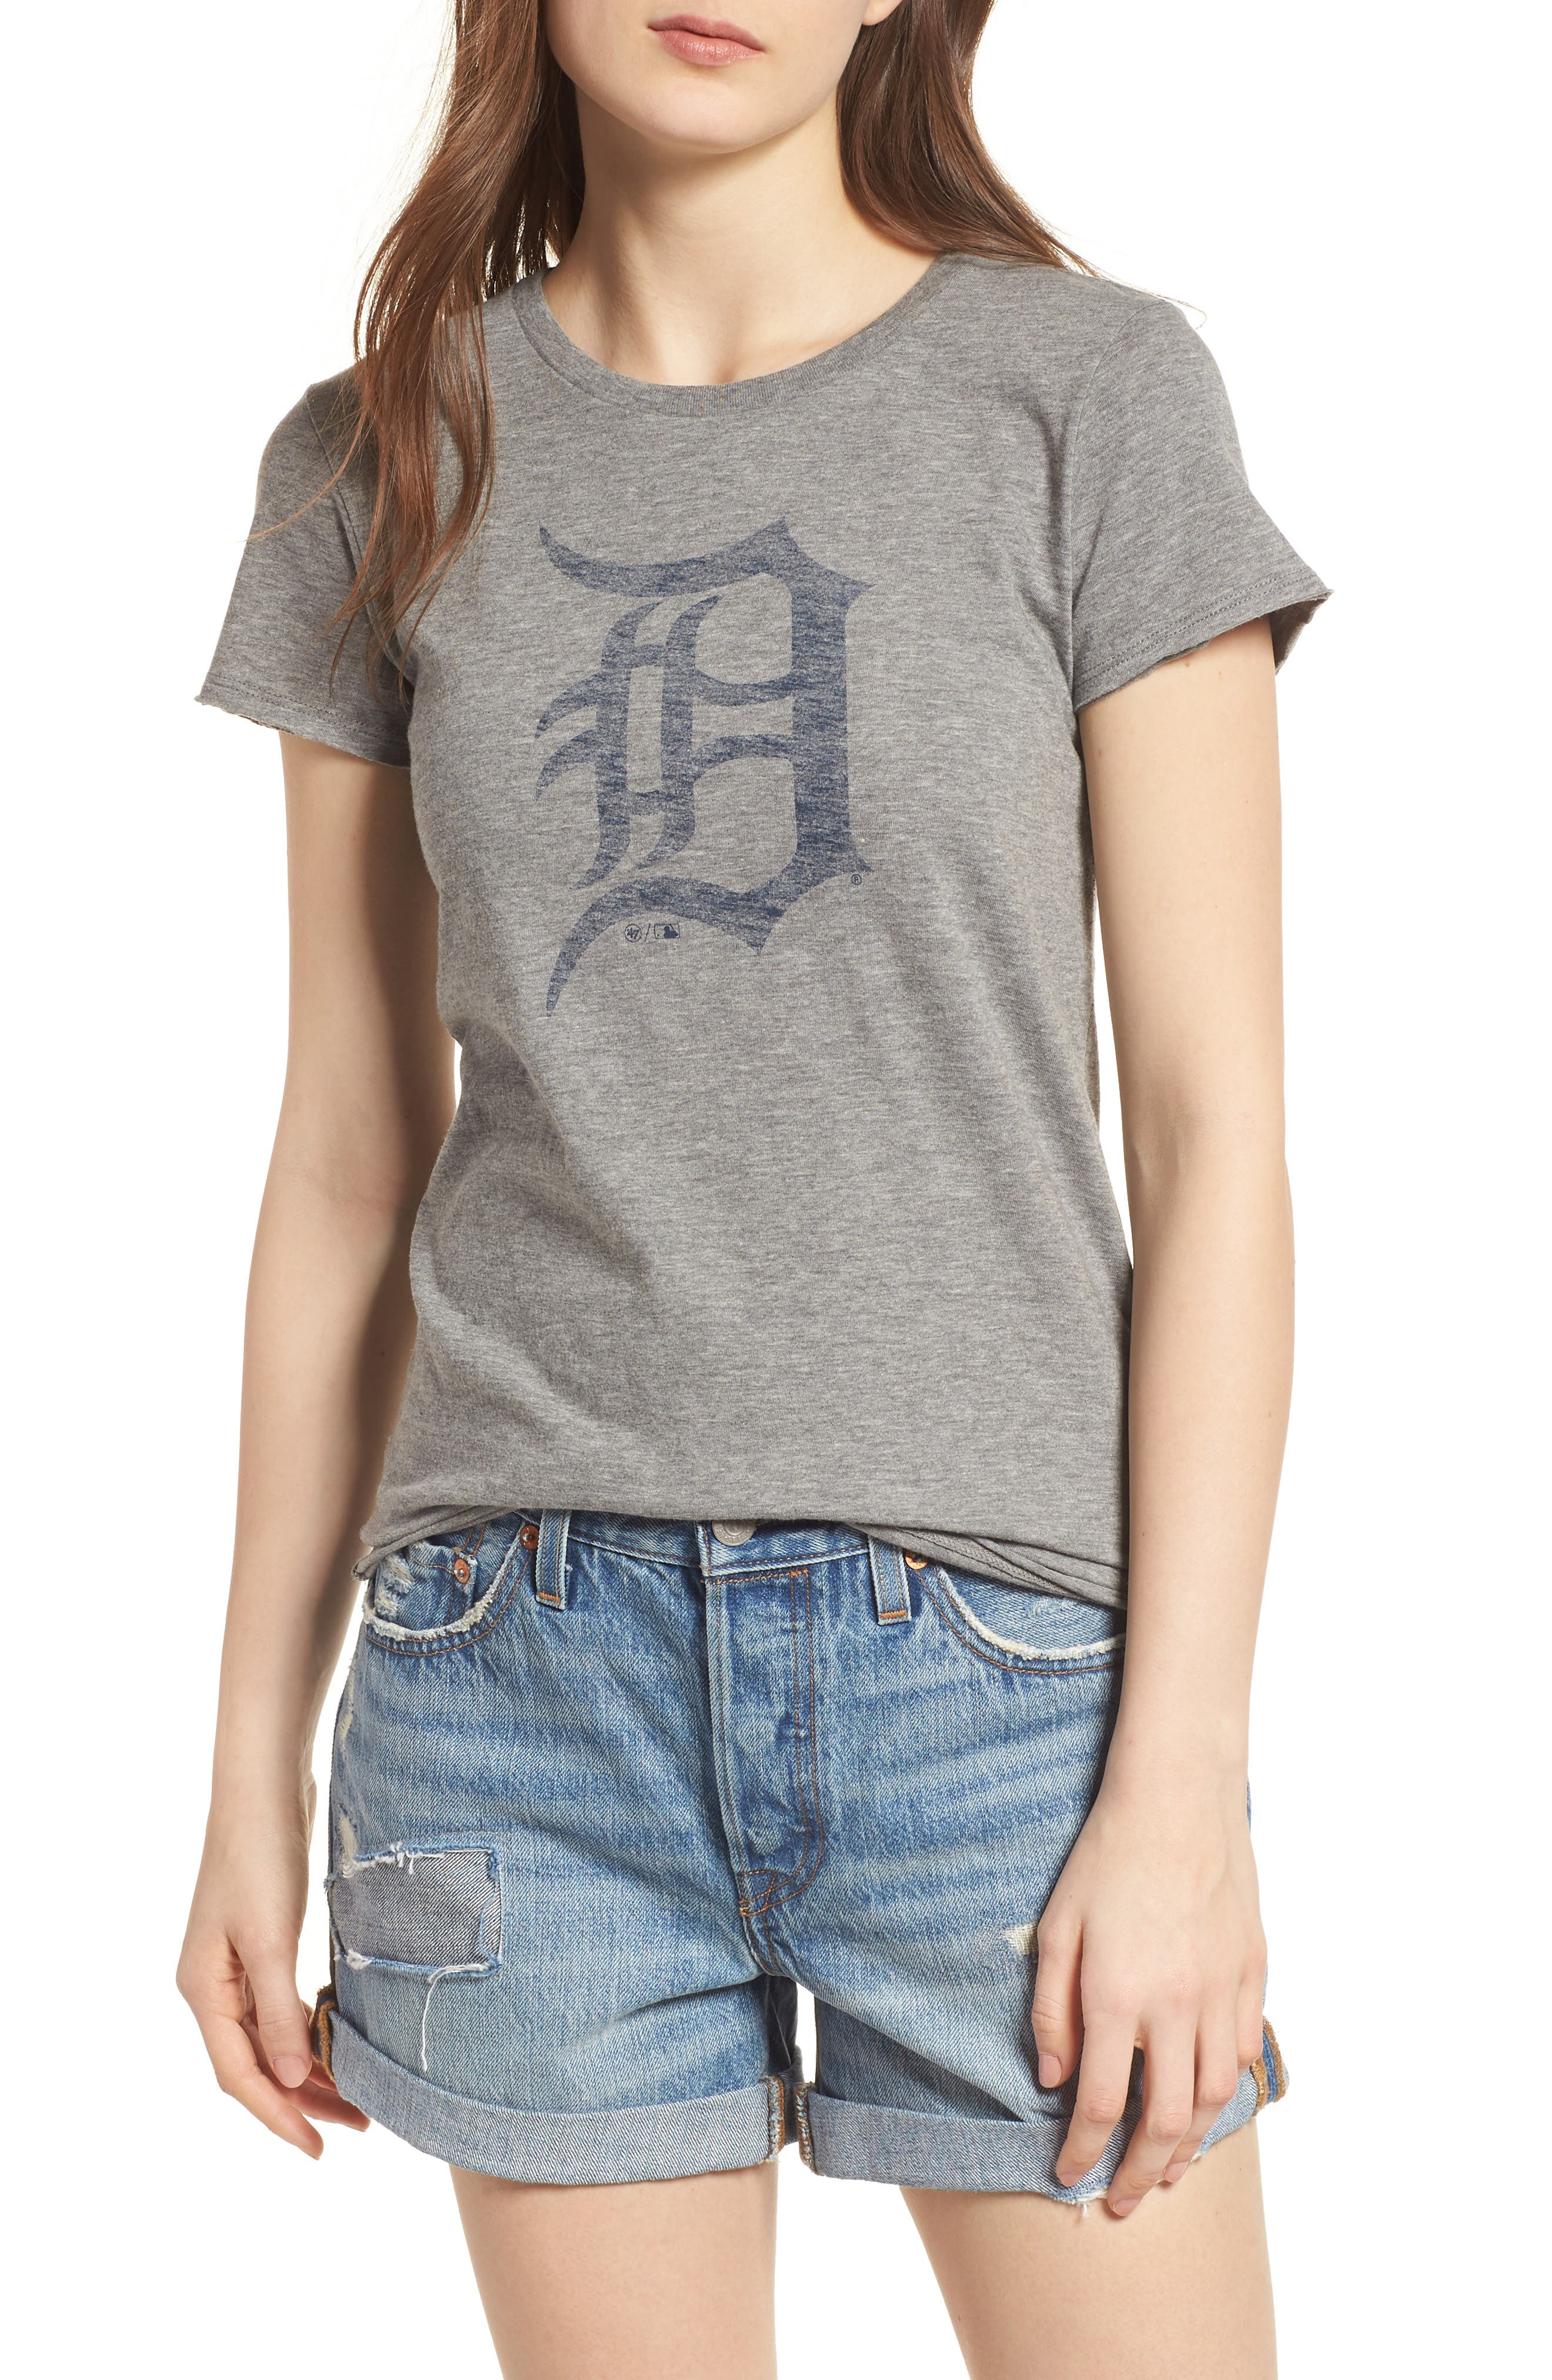 Detroit Tigers Fader Letter Tee,                         Main,                         color, 021